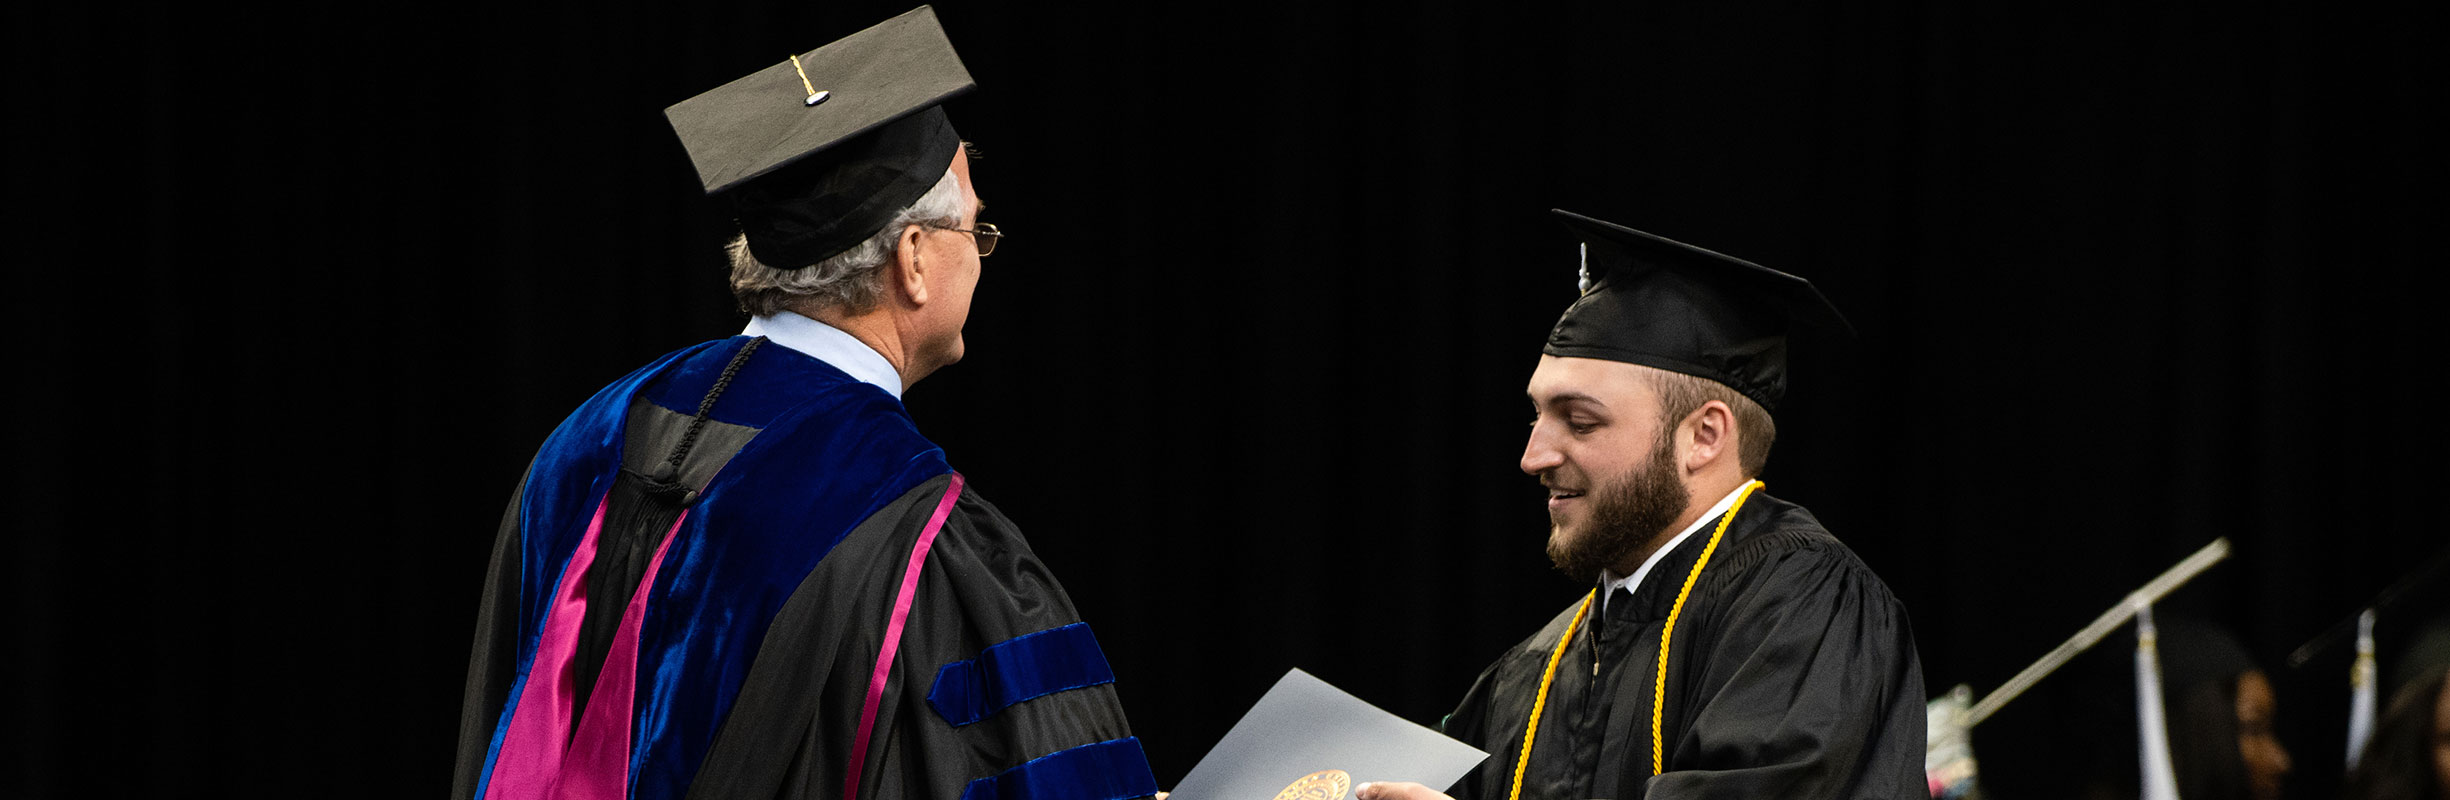 Dean Joe Aistrup hands a student his diploma on stage at graduation